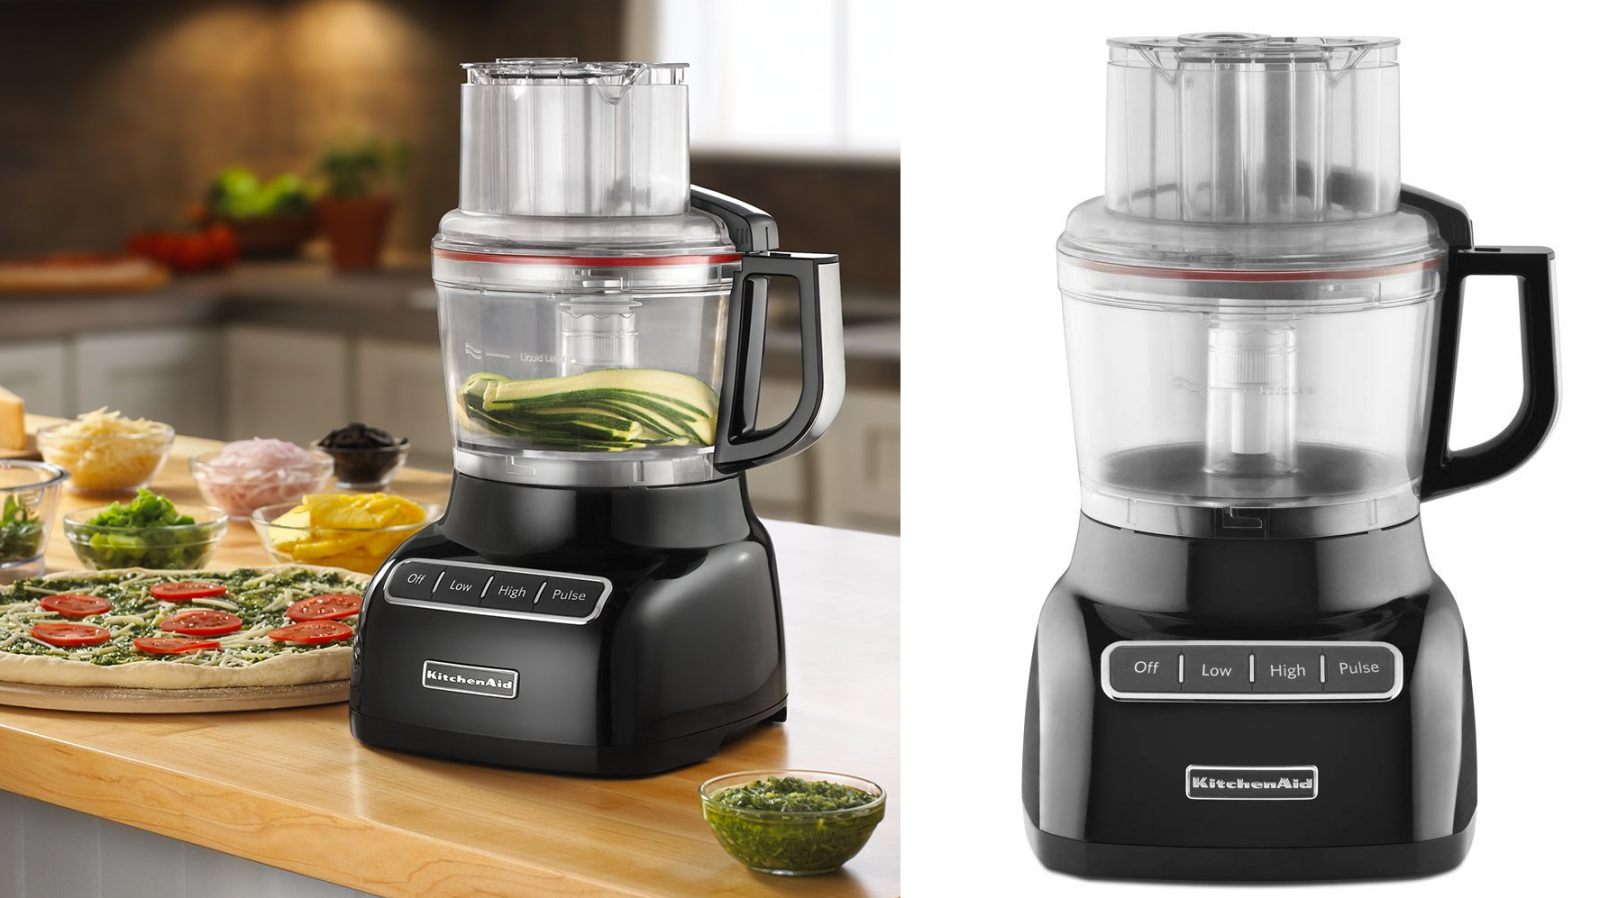 Make Your Own Salsa Amp More With This Kitchenaid 9 Cup Food